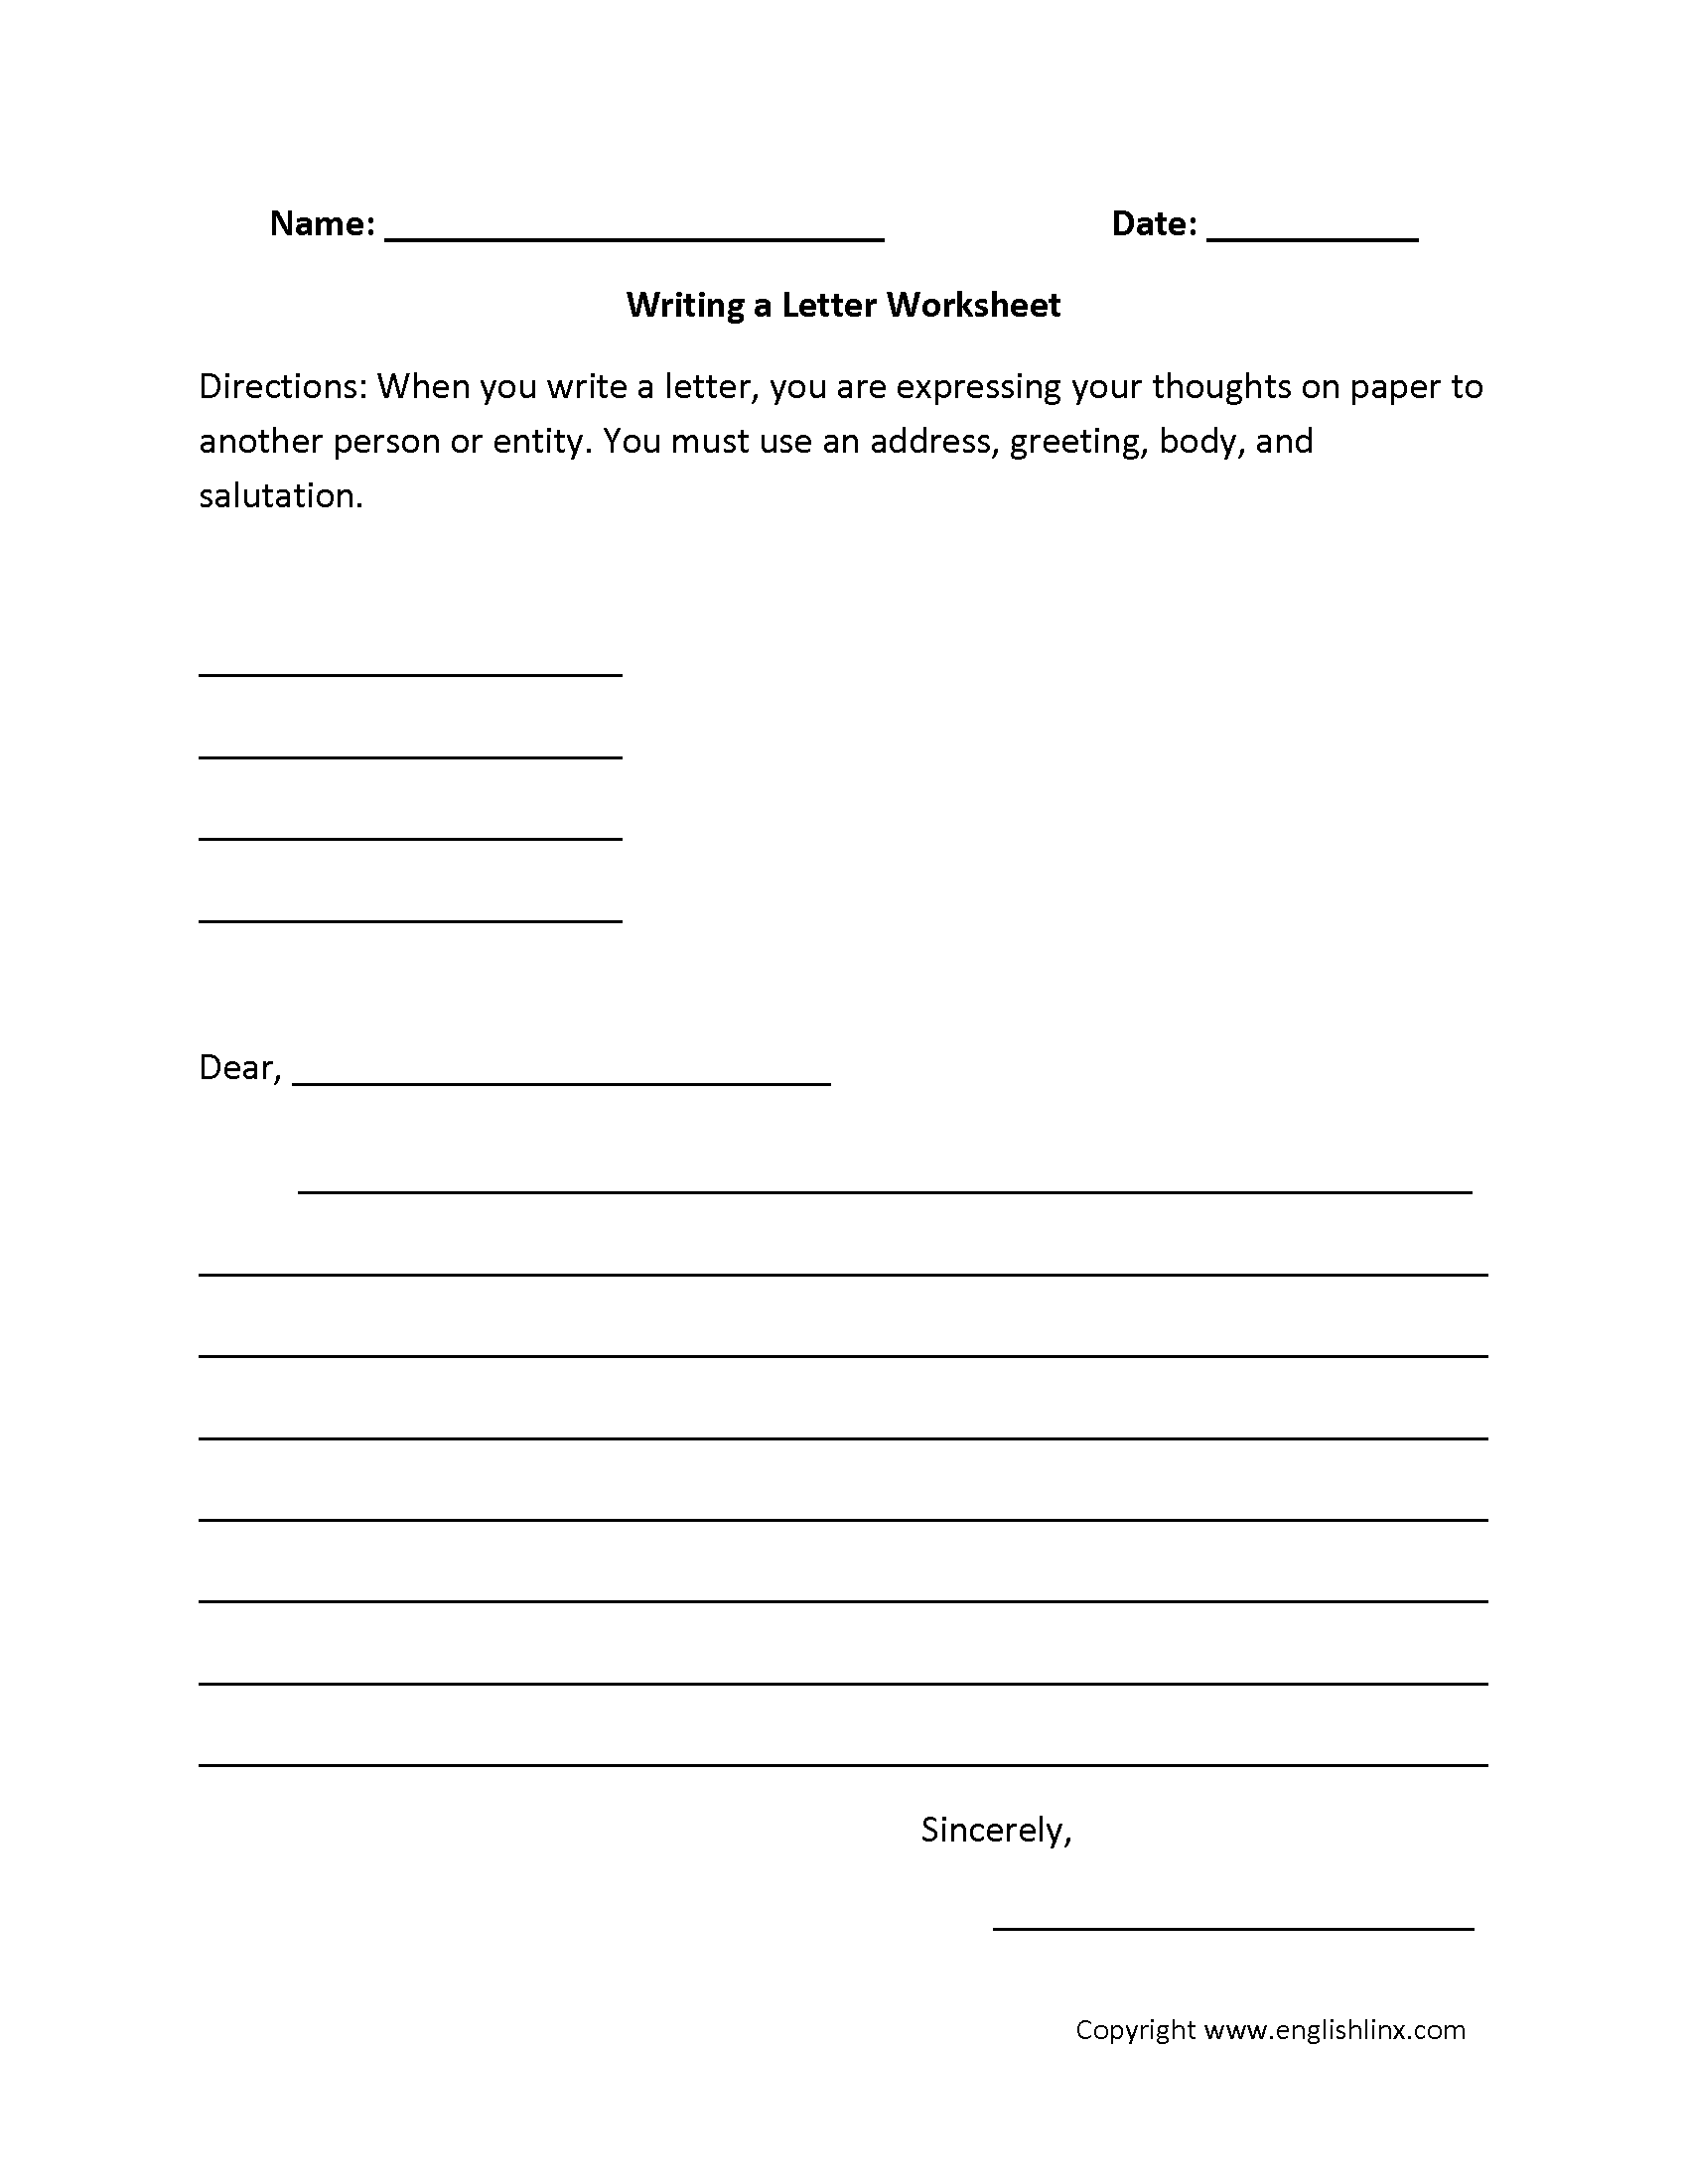 Writing A Letter Worksheets